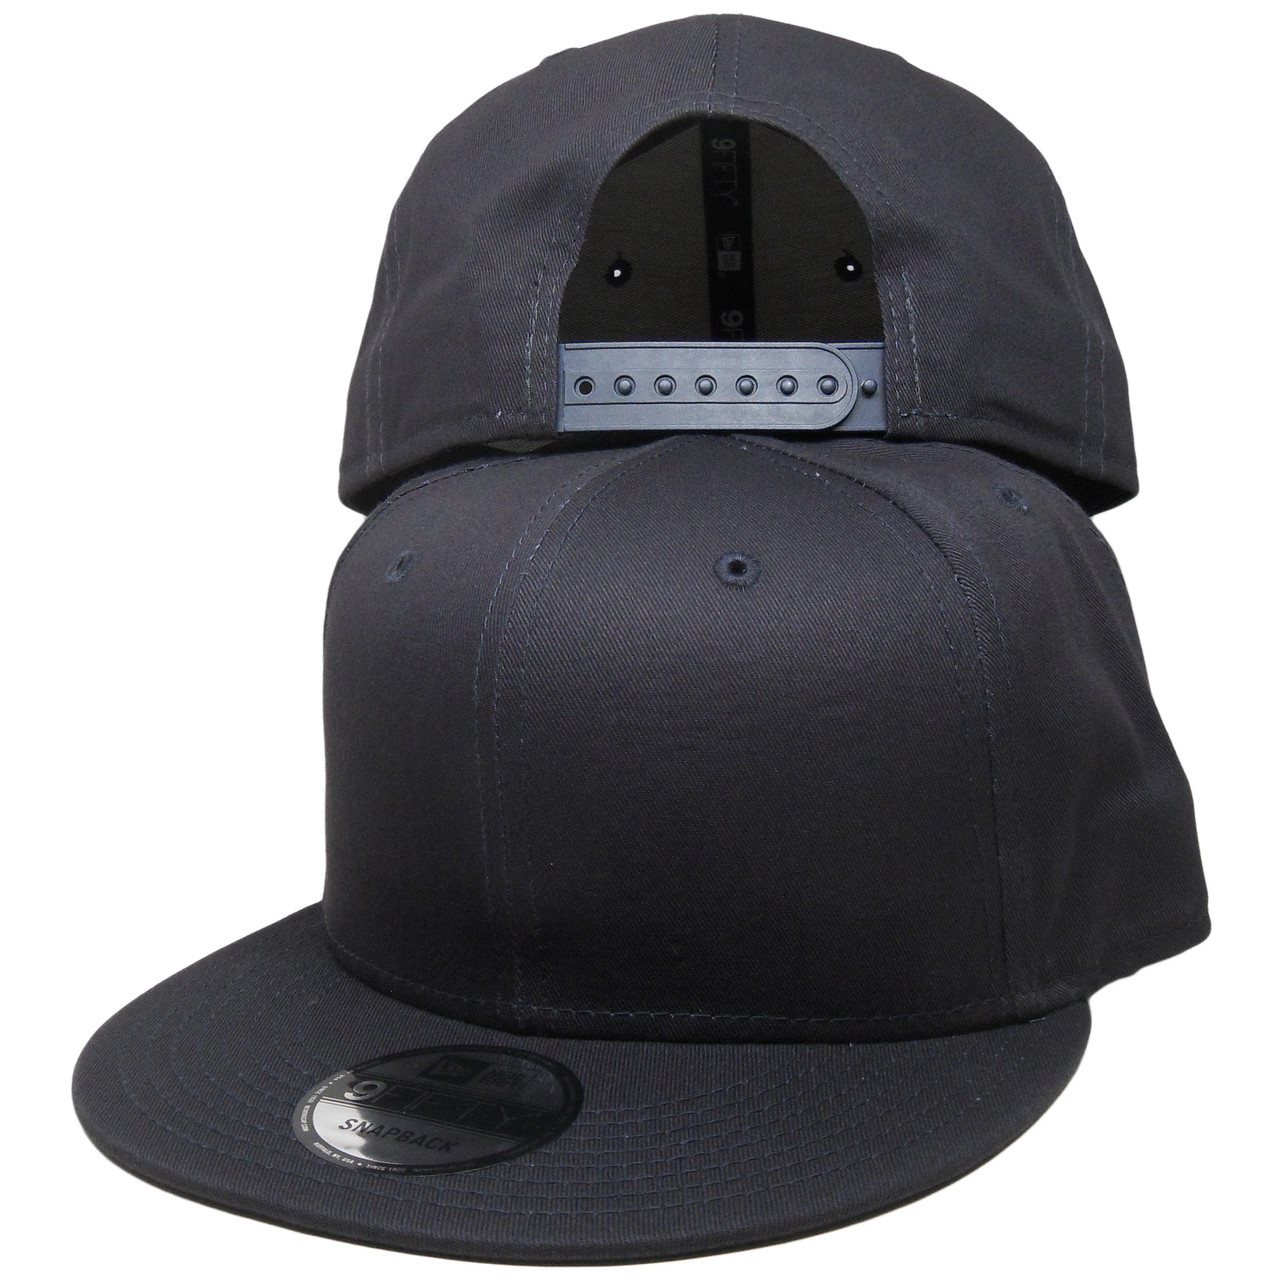 957fac88 low cost navy blue snapback hat 2a15f f72c9